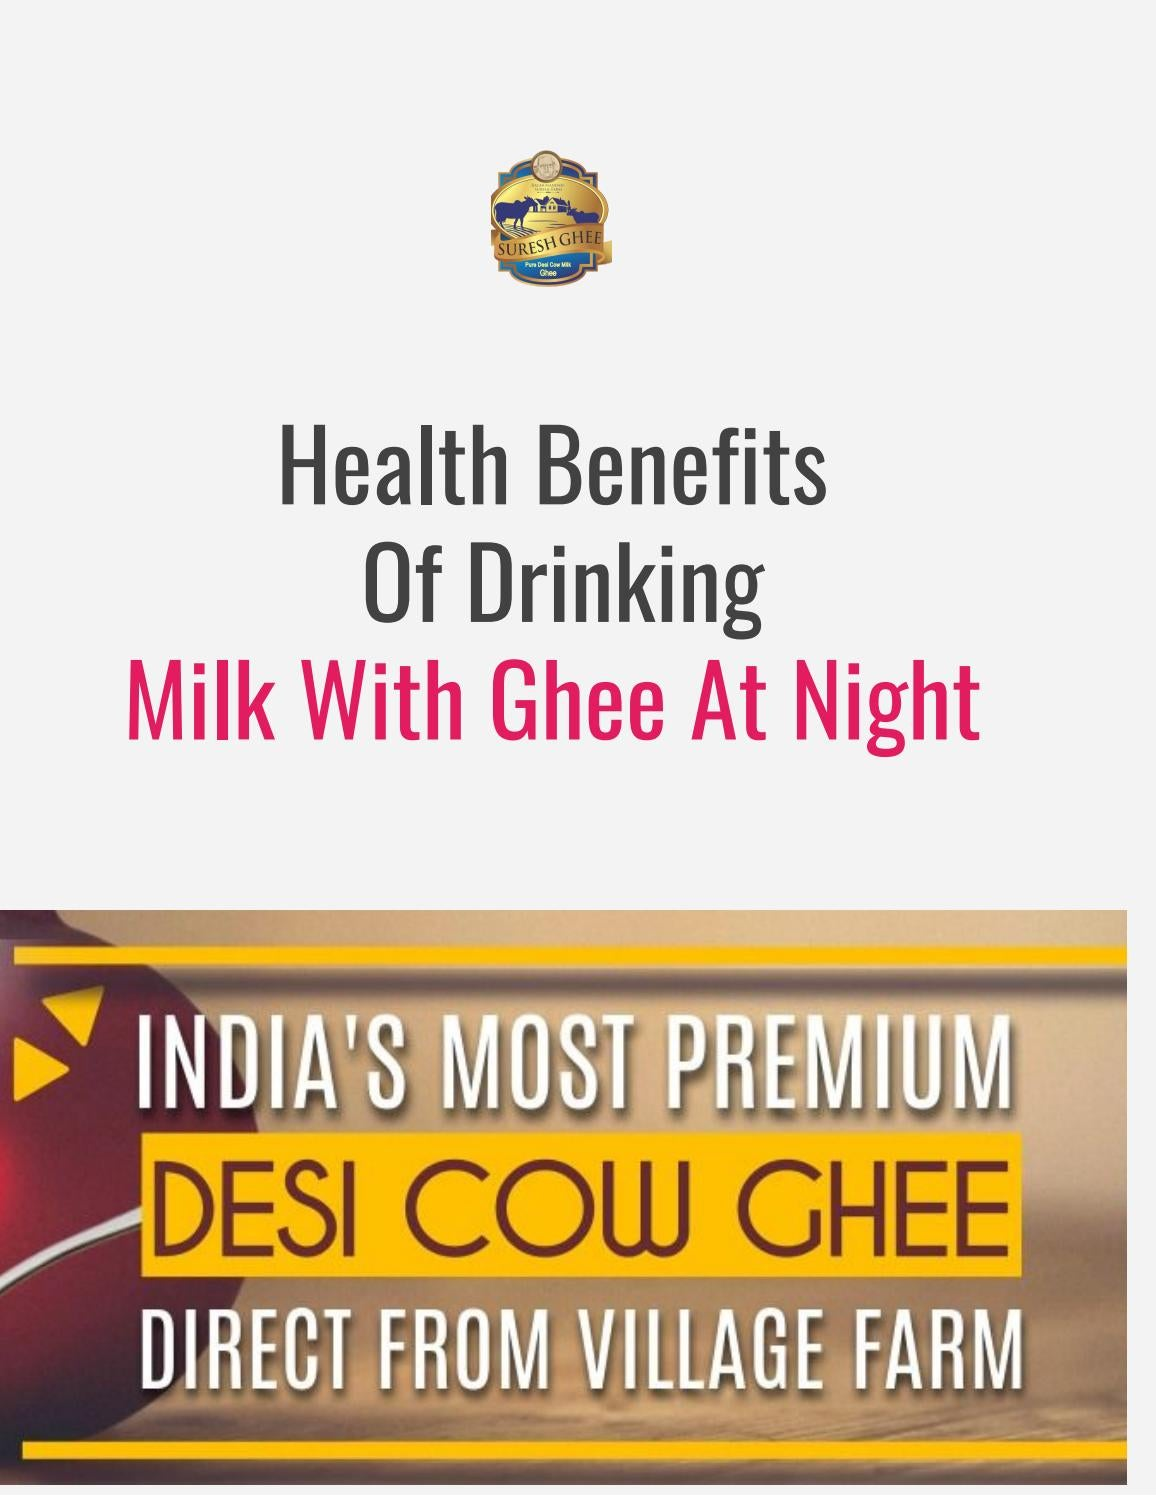 Health Benefits Of Drinking Milk With Ghee At Night Sureshdesighee By Sureshdesighee Issuu